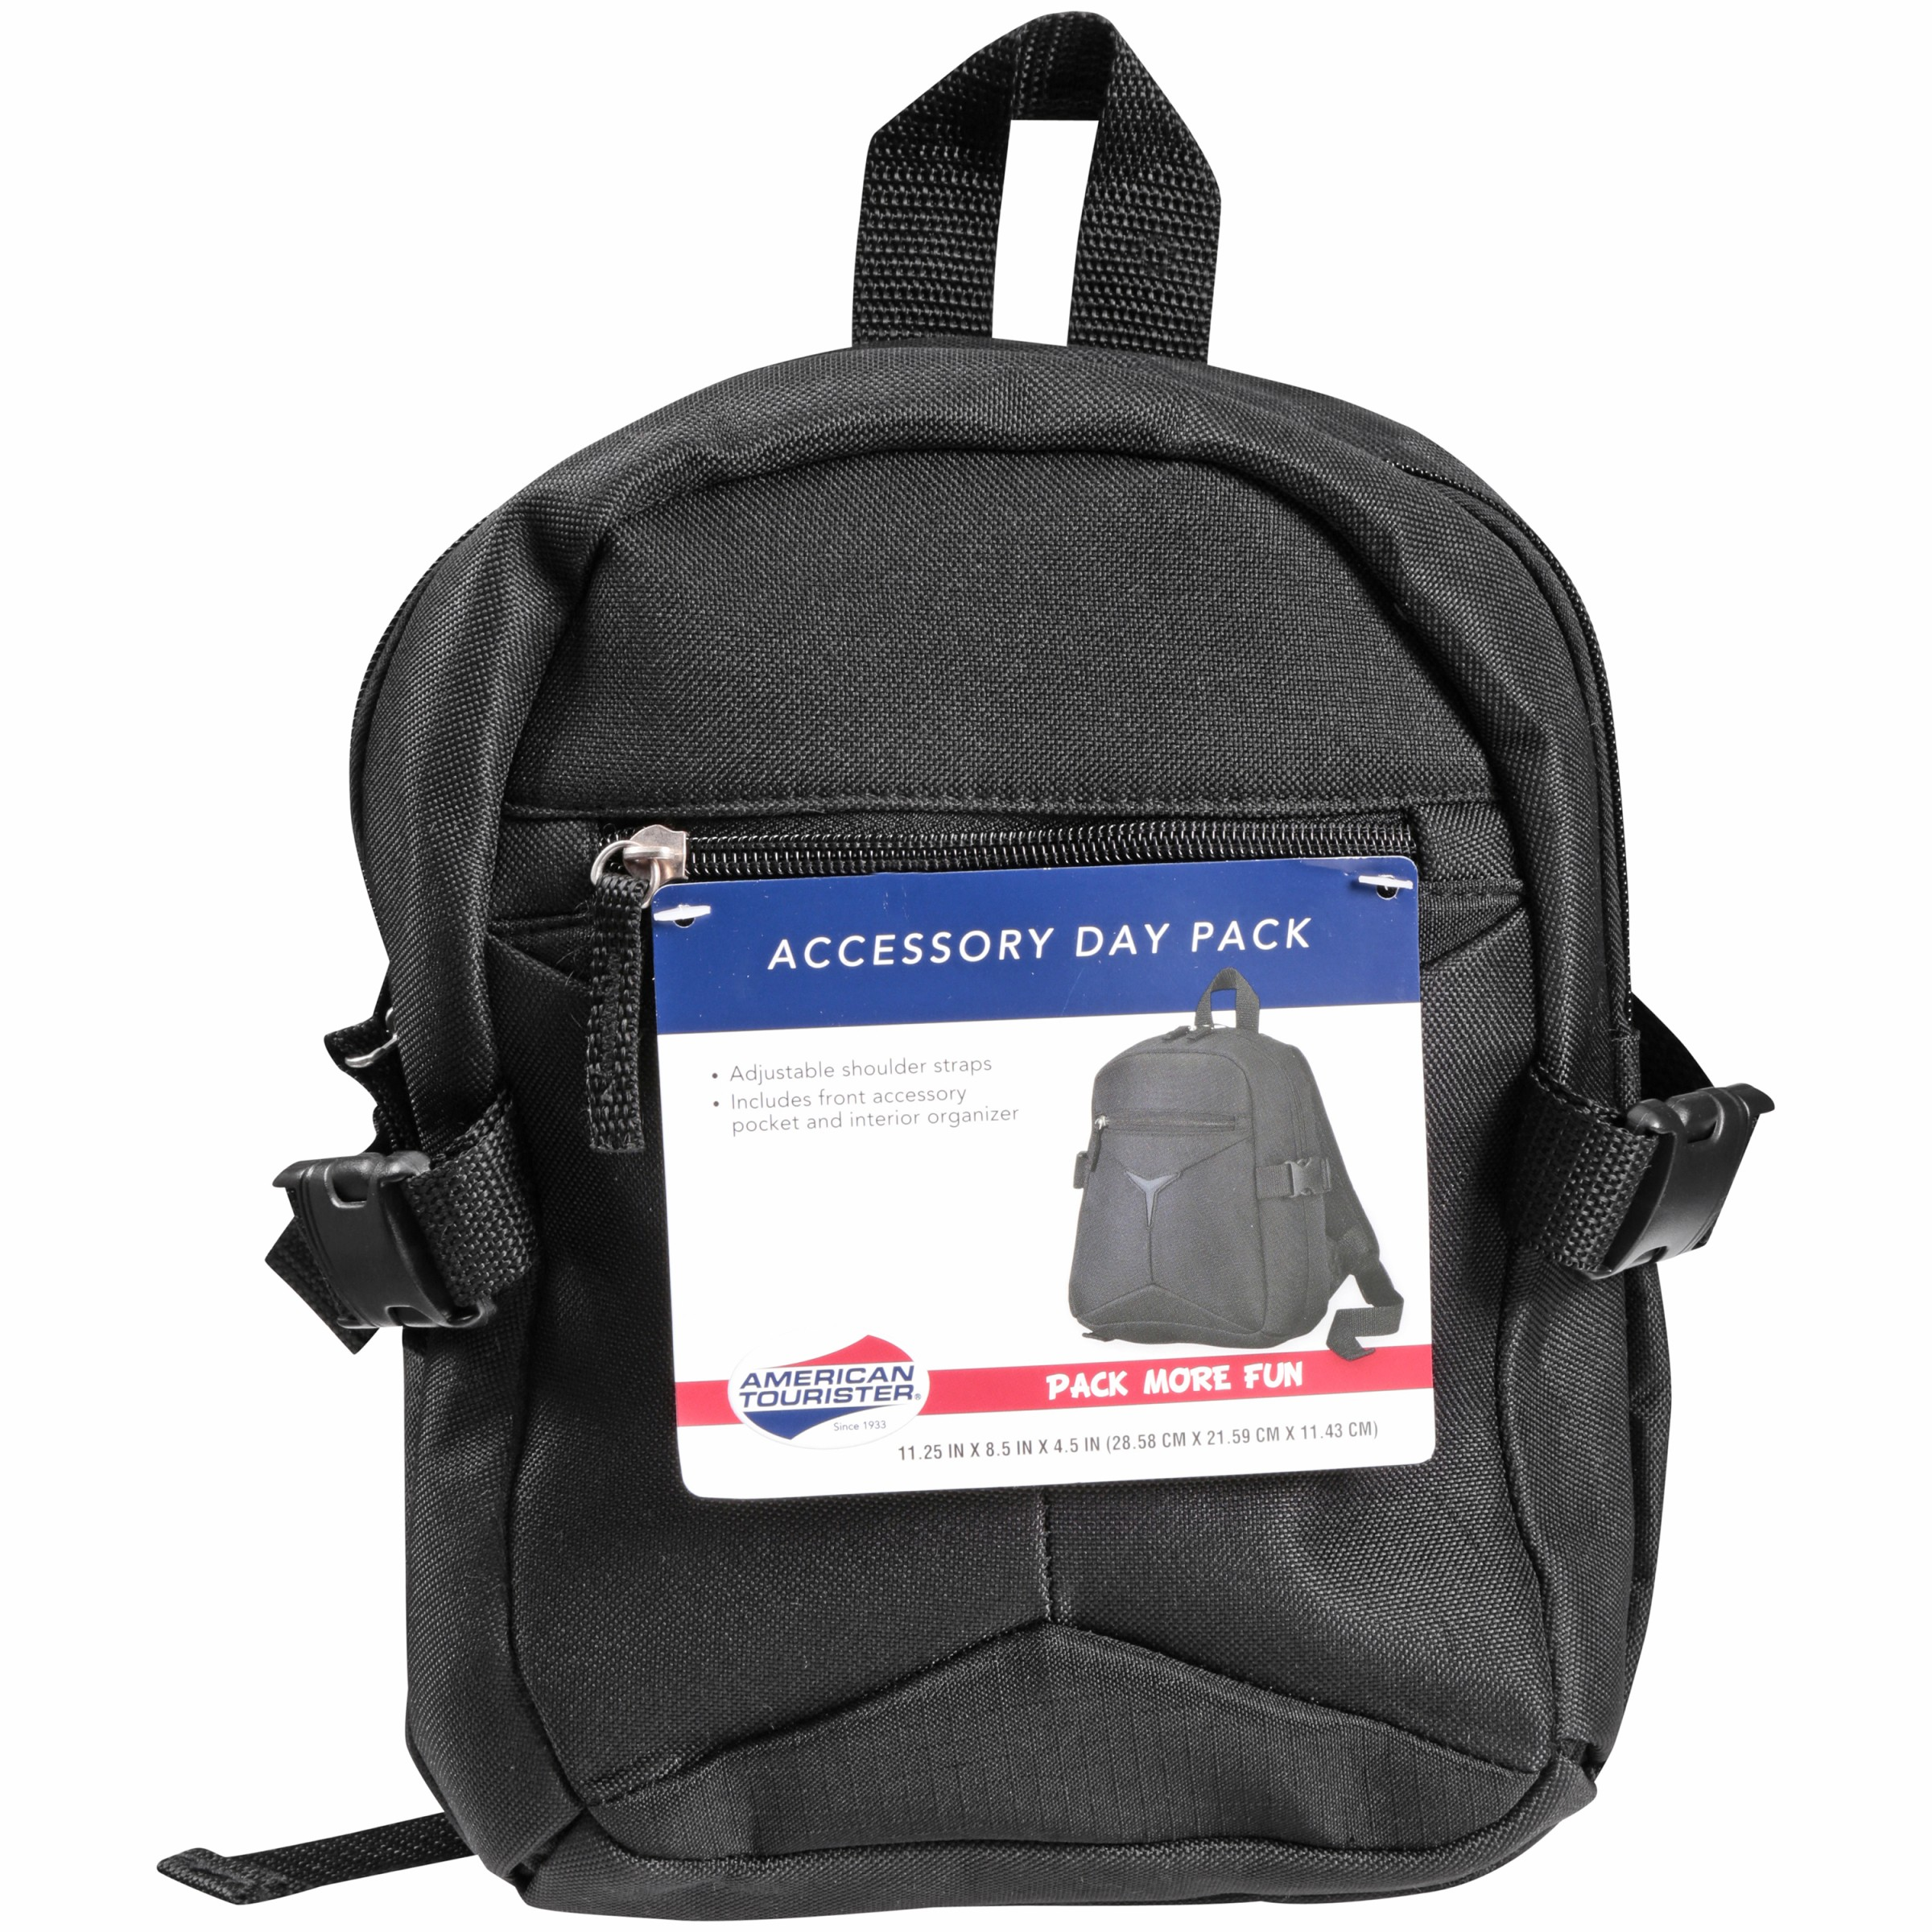 ee2ad95dff4 American Tourister - Black Accessory Day Pack - Walmart.com